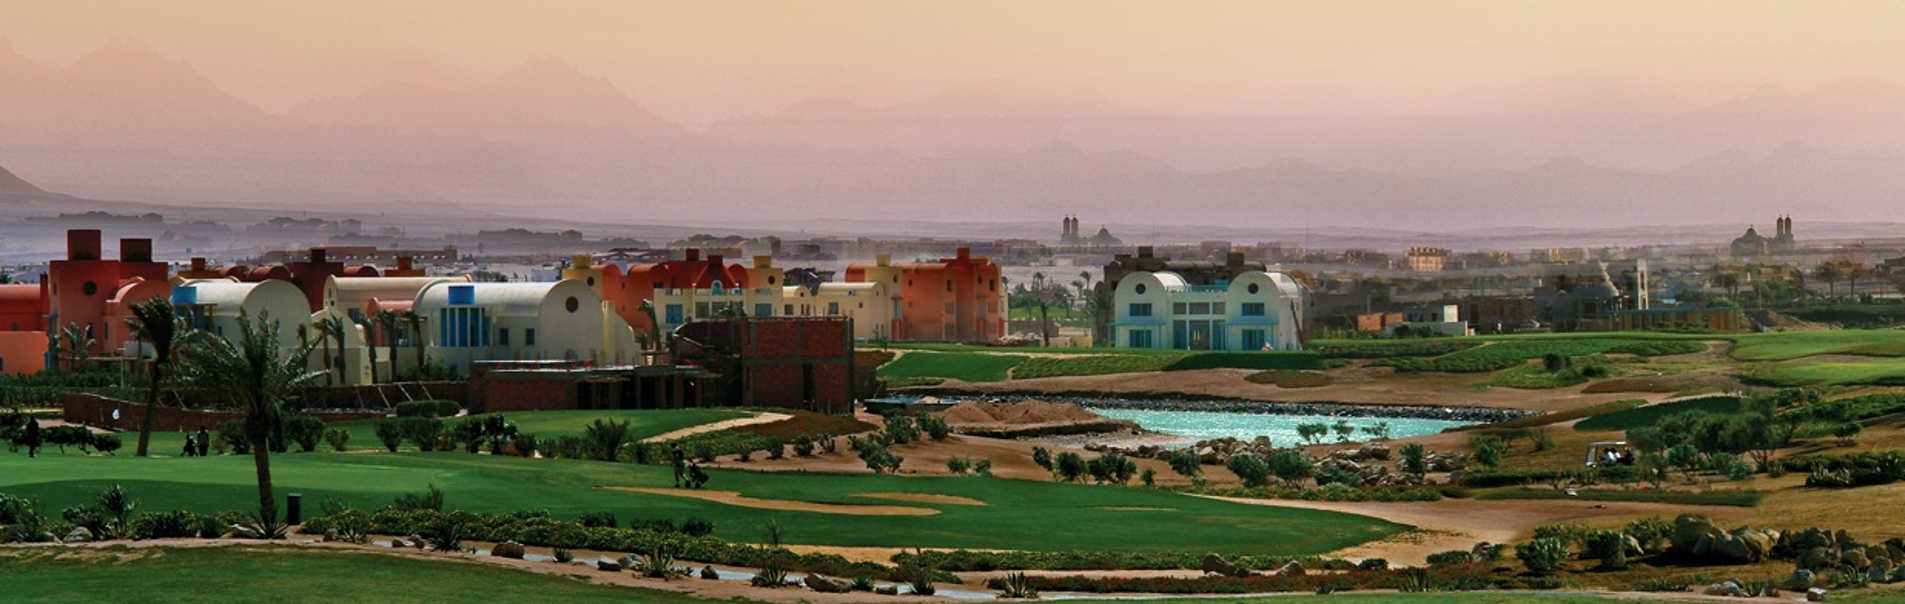 El Gouna is #1 Green Town in Egypt